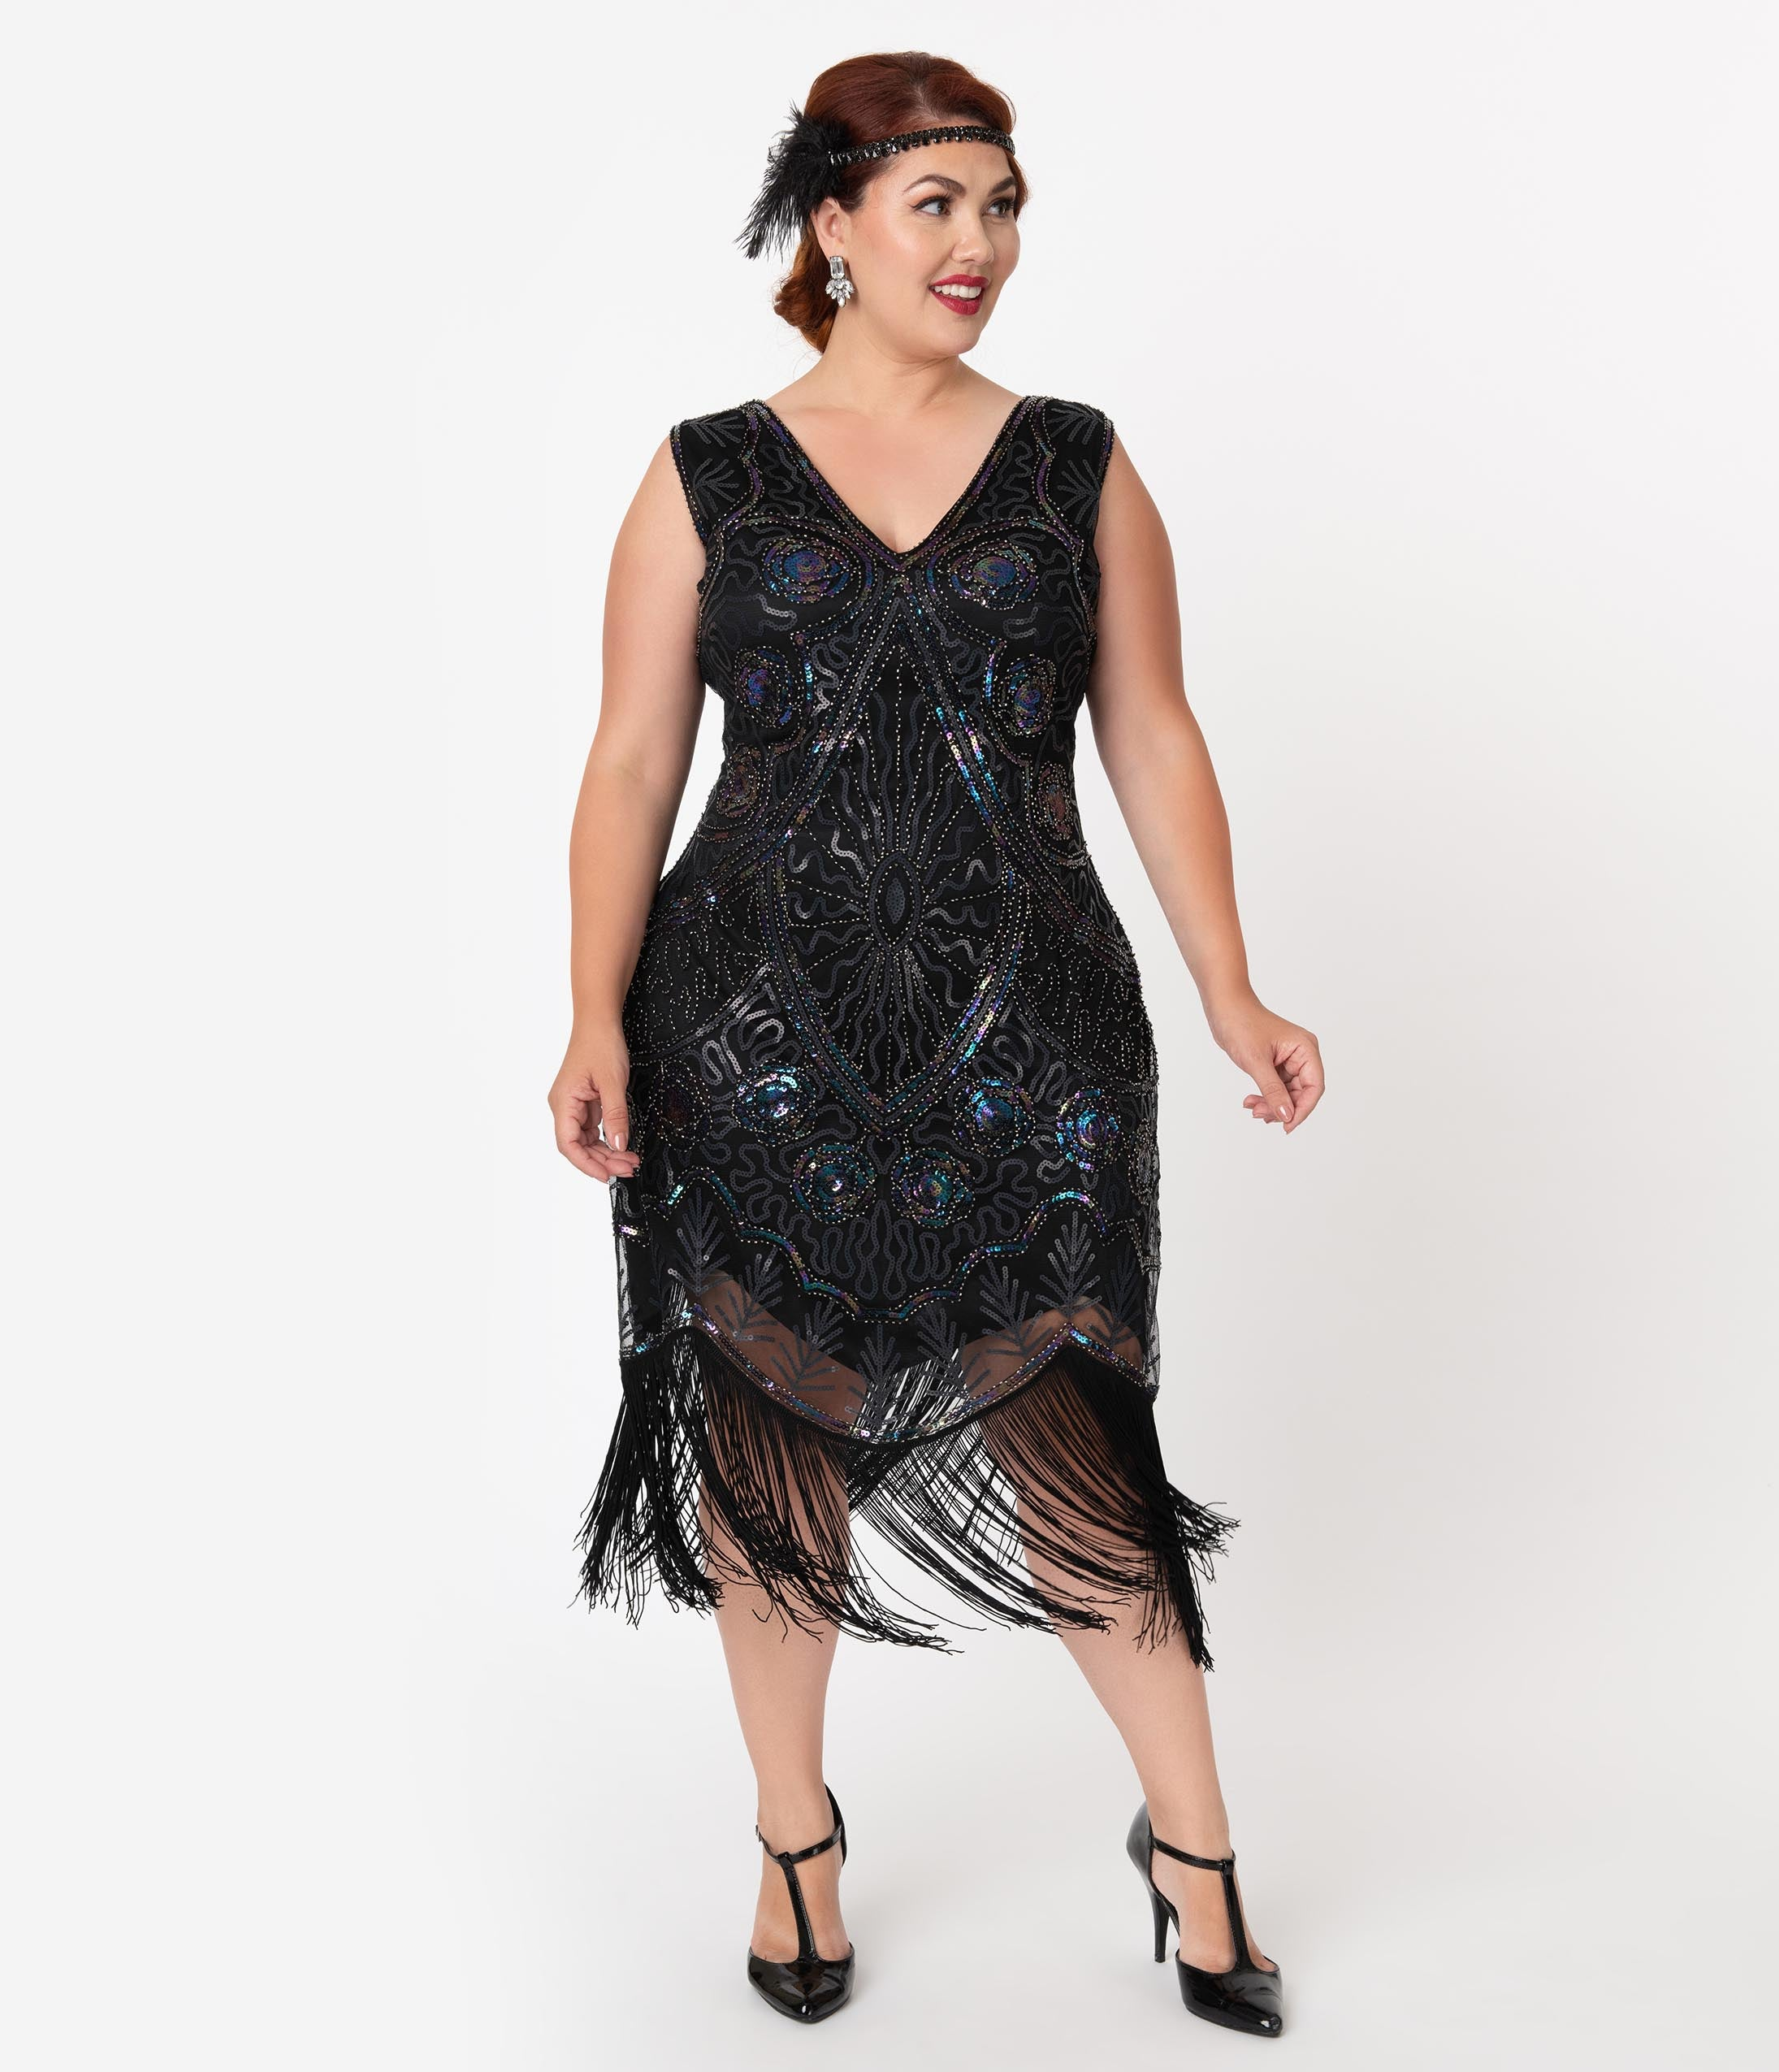 1920s Plus Size Flapper Dresses, Gatsby Dresses, Flapper Costumes Unique Vintage Plus Size Black Iridescent Beaded Zelia Fringe Flapper Dress $98.00 AT vintagedancer.com